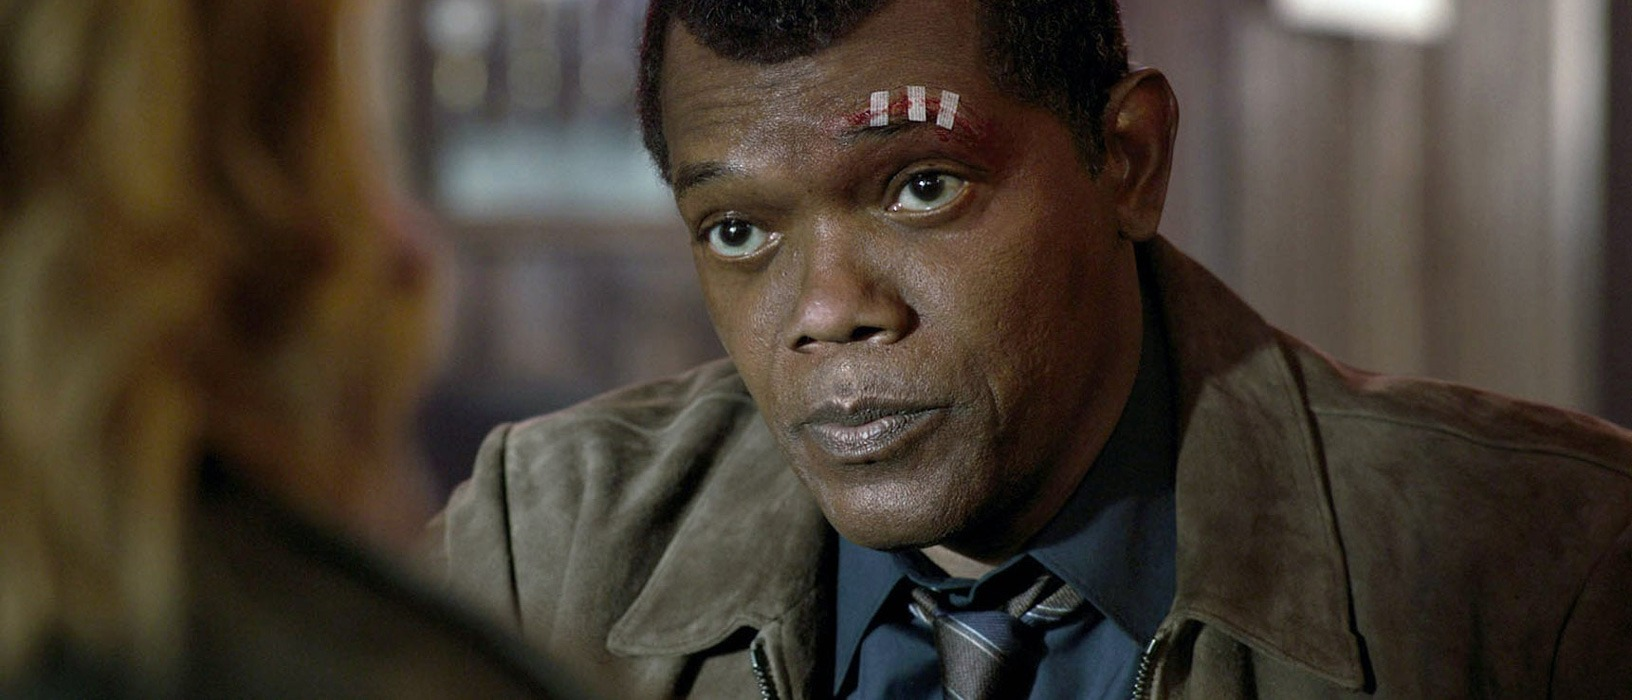 Will Nick Fury feature in Captain Marvel 2?